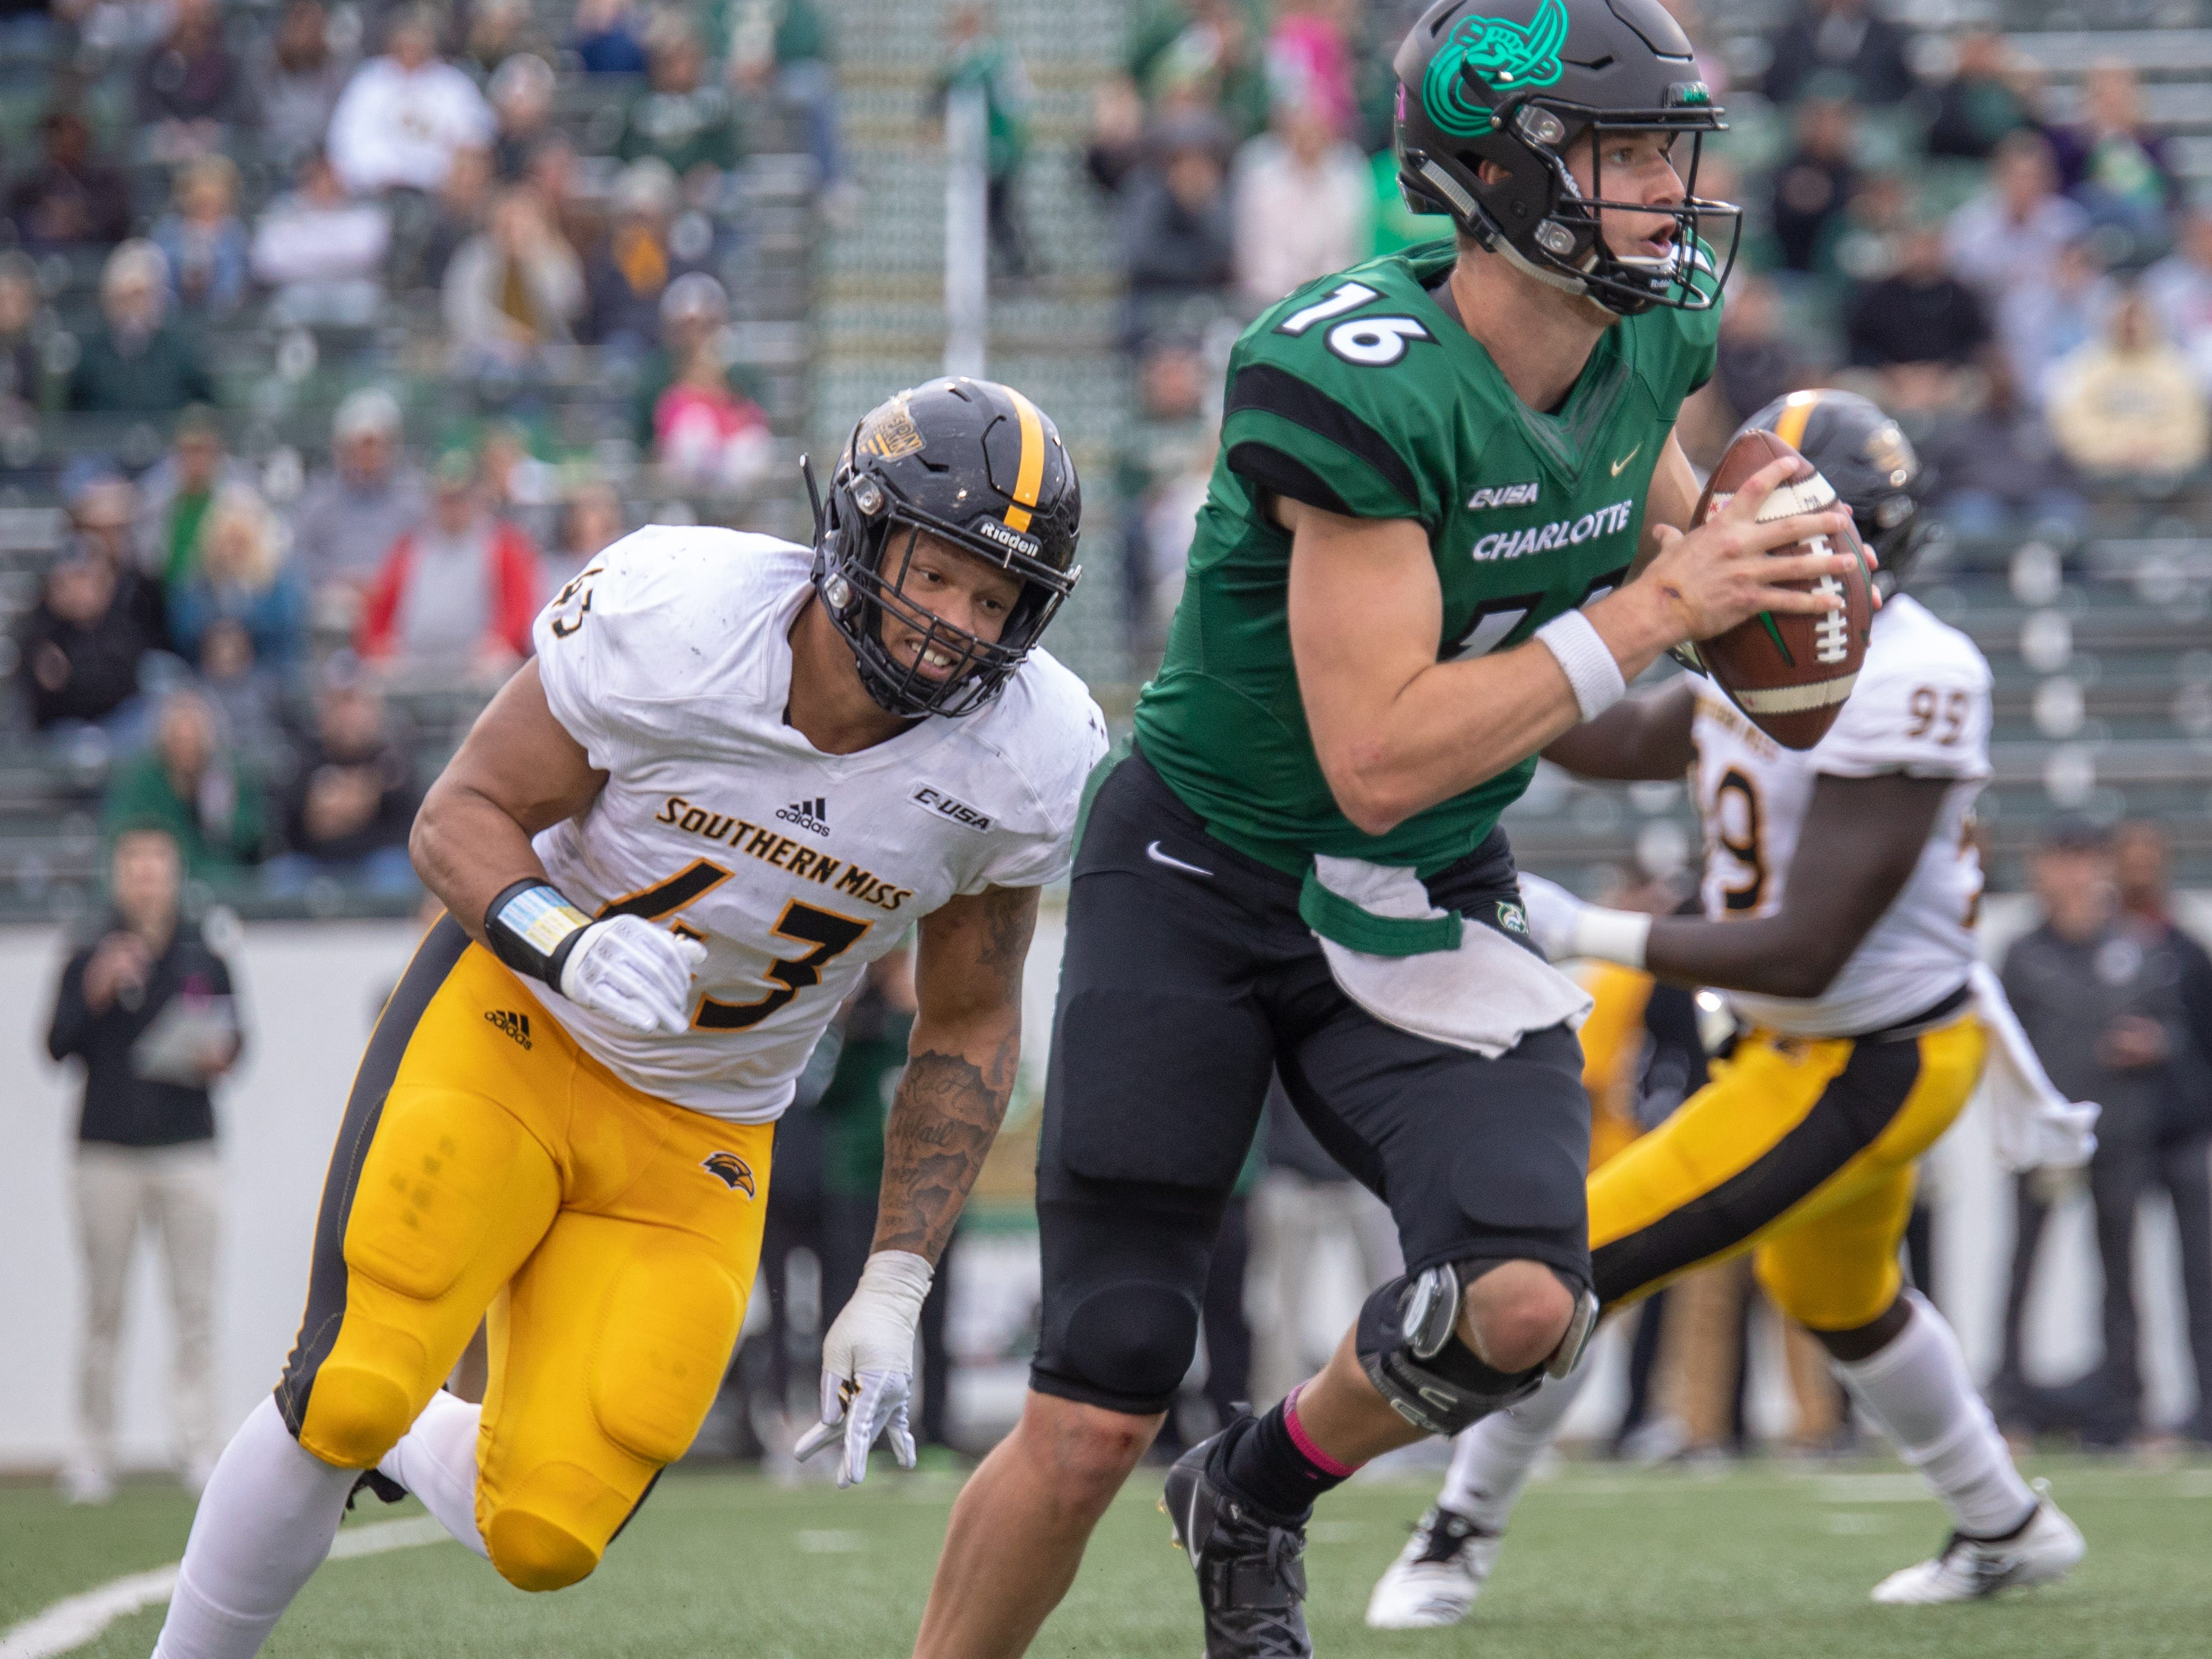 Charlotte quarterback Evan Shirreffs rolls out looking for a receiver as Southern Miss linebacker Seth Holloway (43) gives chase Saturday at Charlotte, N.C.